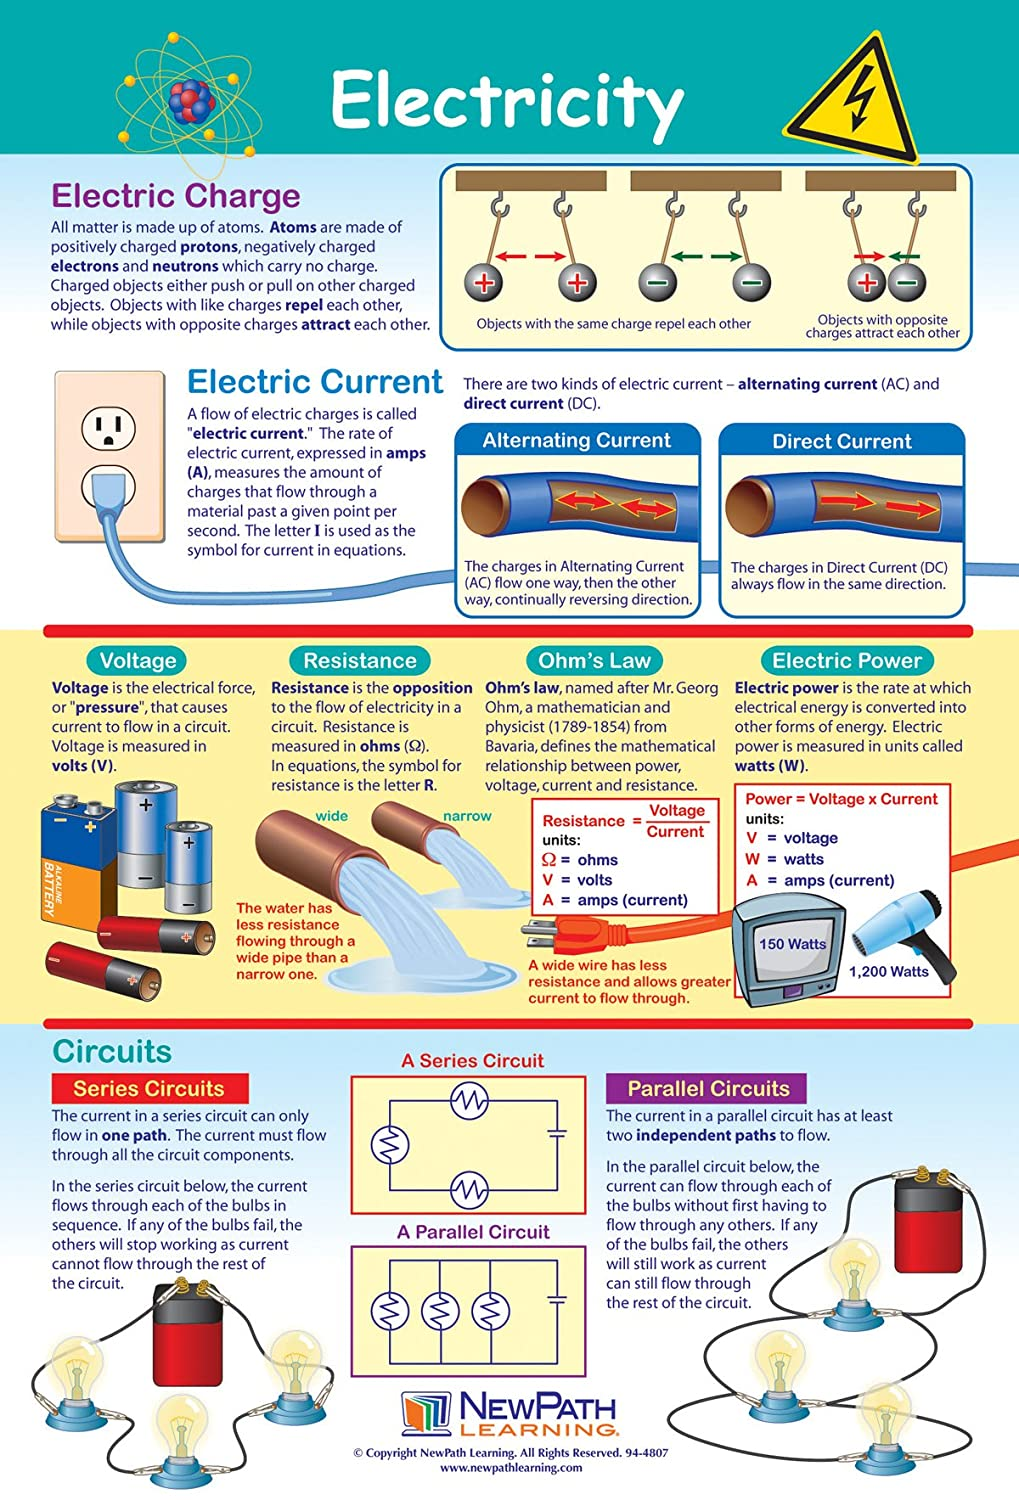 Electricity Poster Laminated Full Color 23 X 35 Series Circuit Industrial Scientific